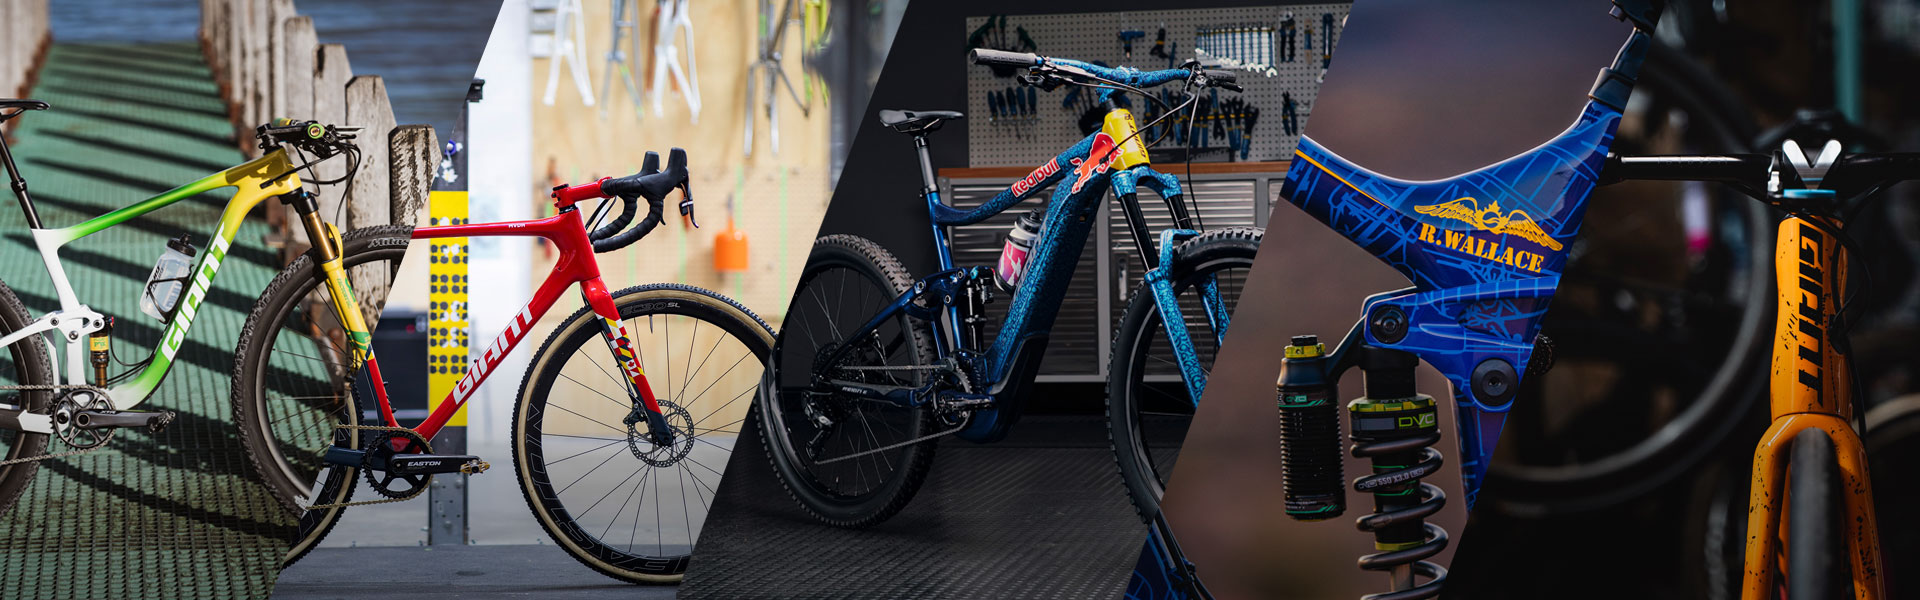 10 of the hottest Giant bikes of 2019!